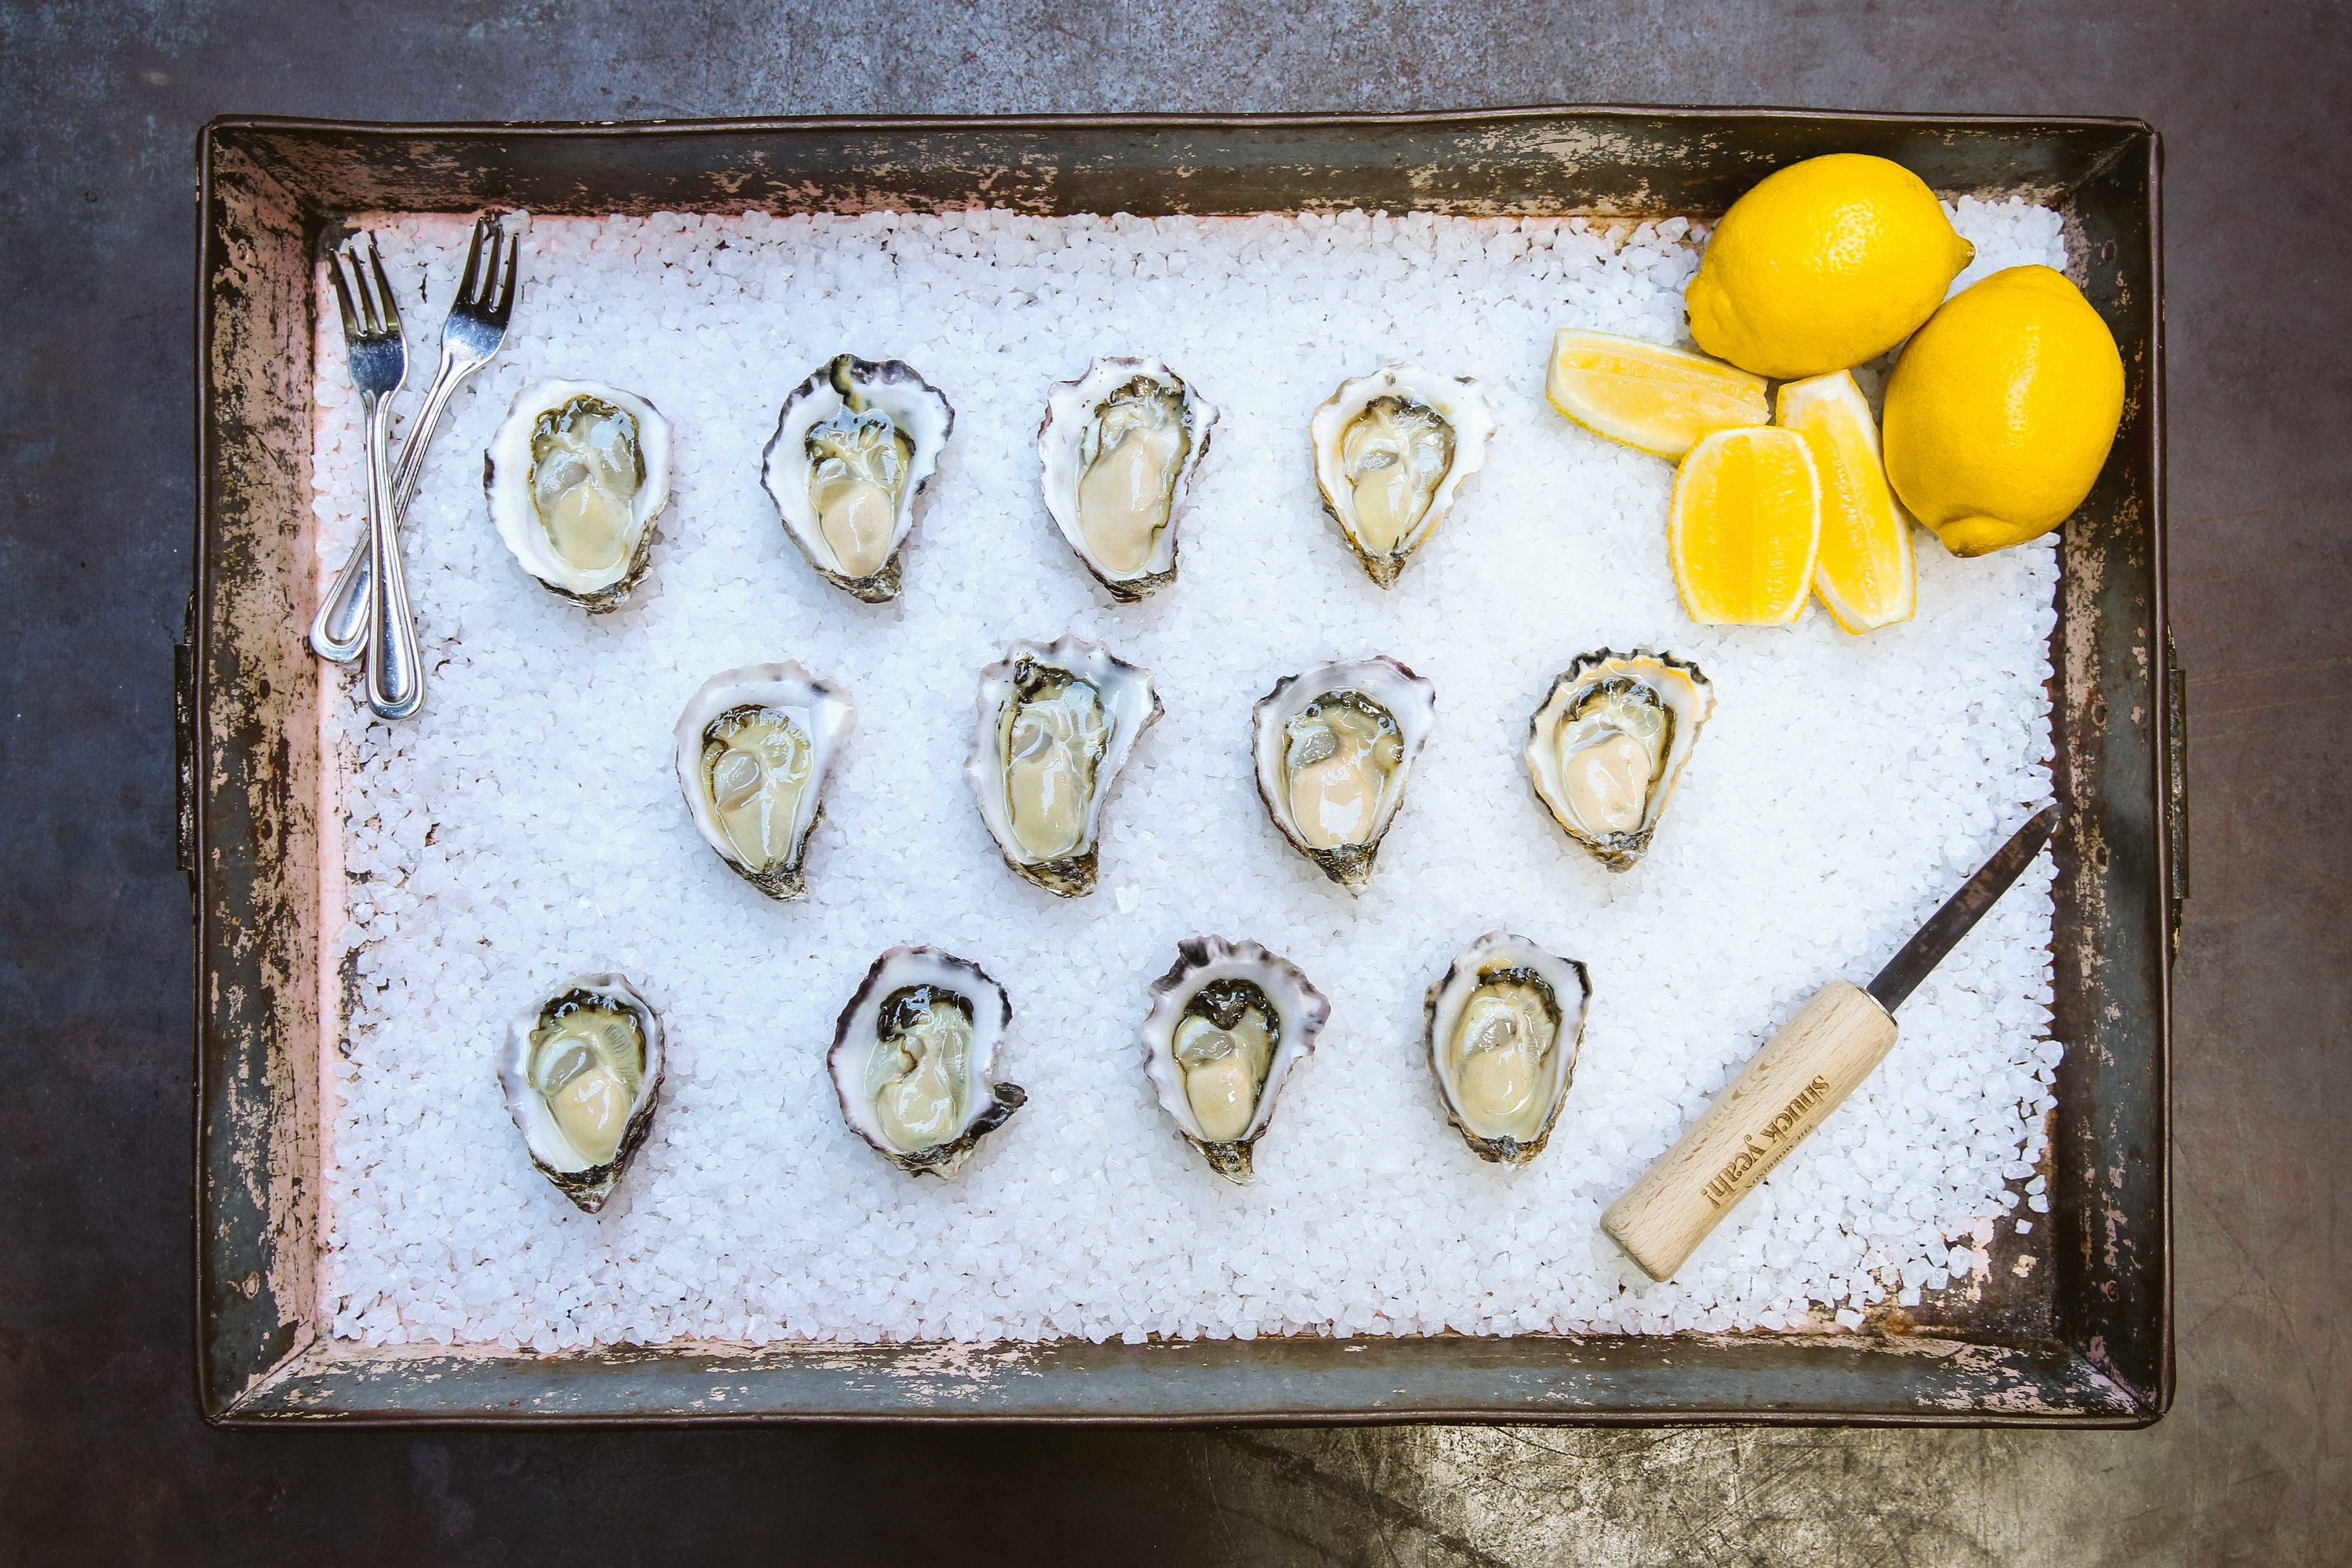 Morrison Oyster Festival tray of oysters in rock salt